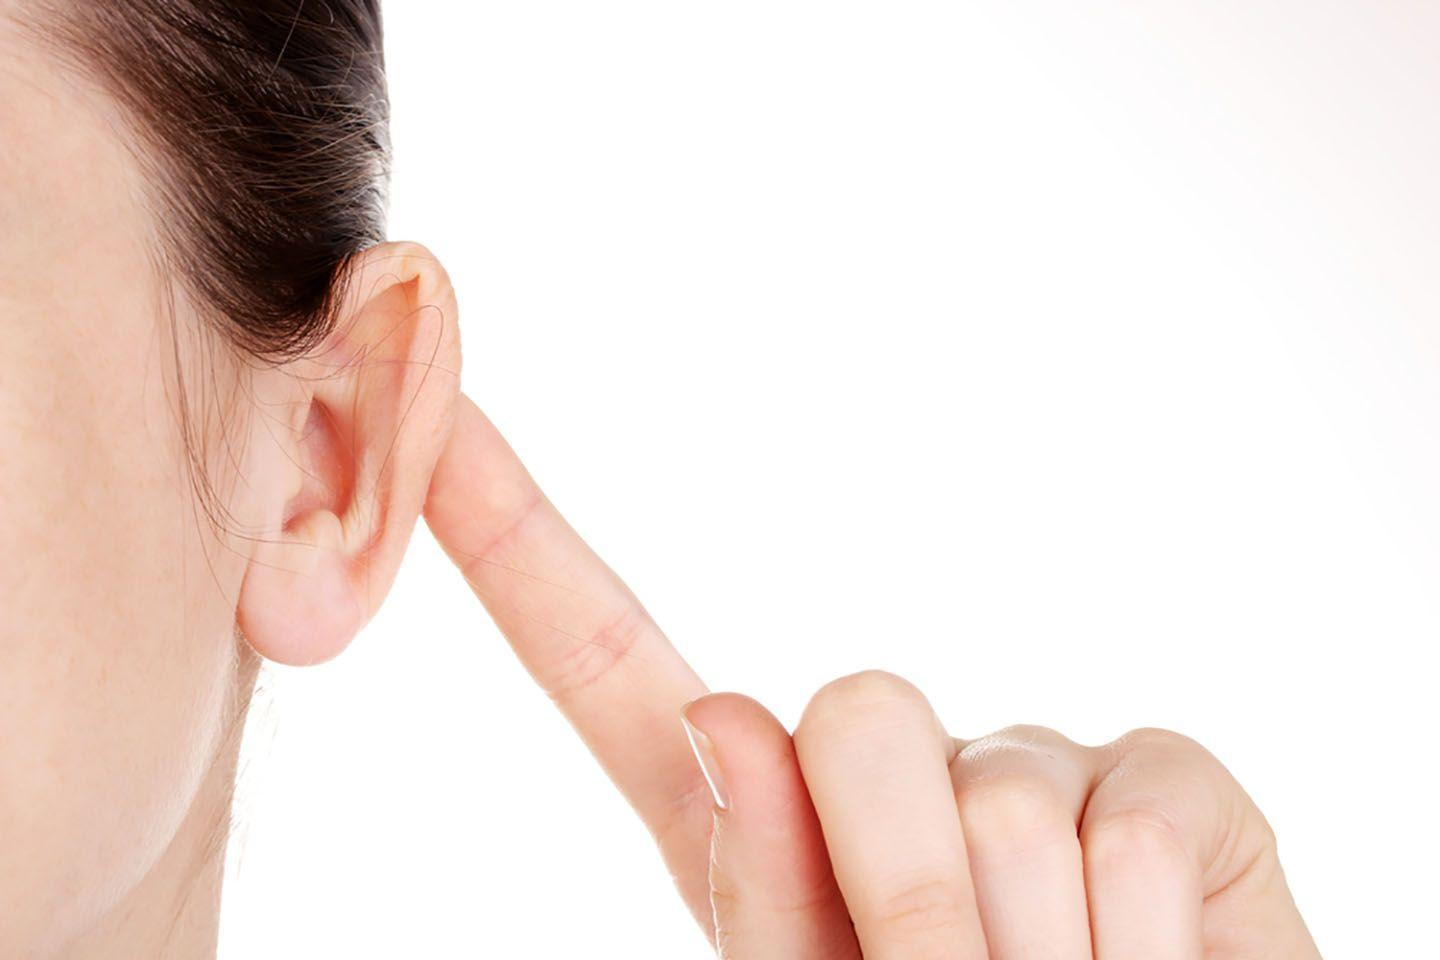 A woman pushes her ear forward with her finger